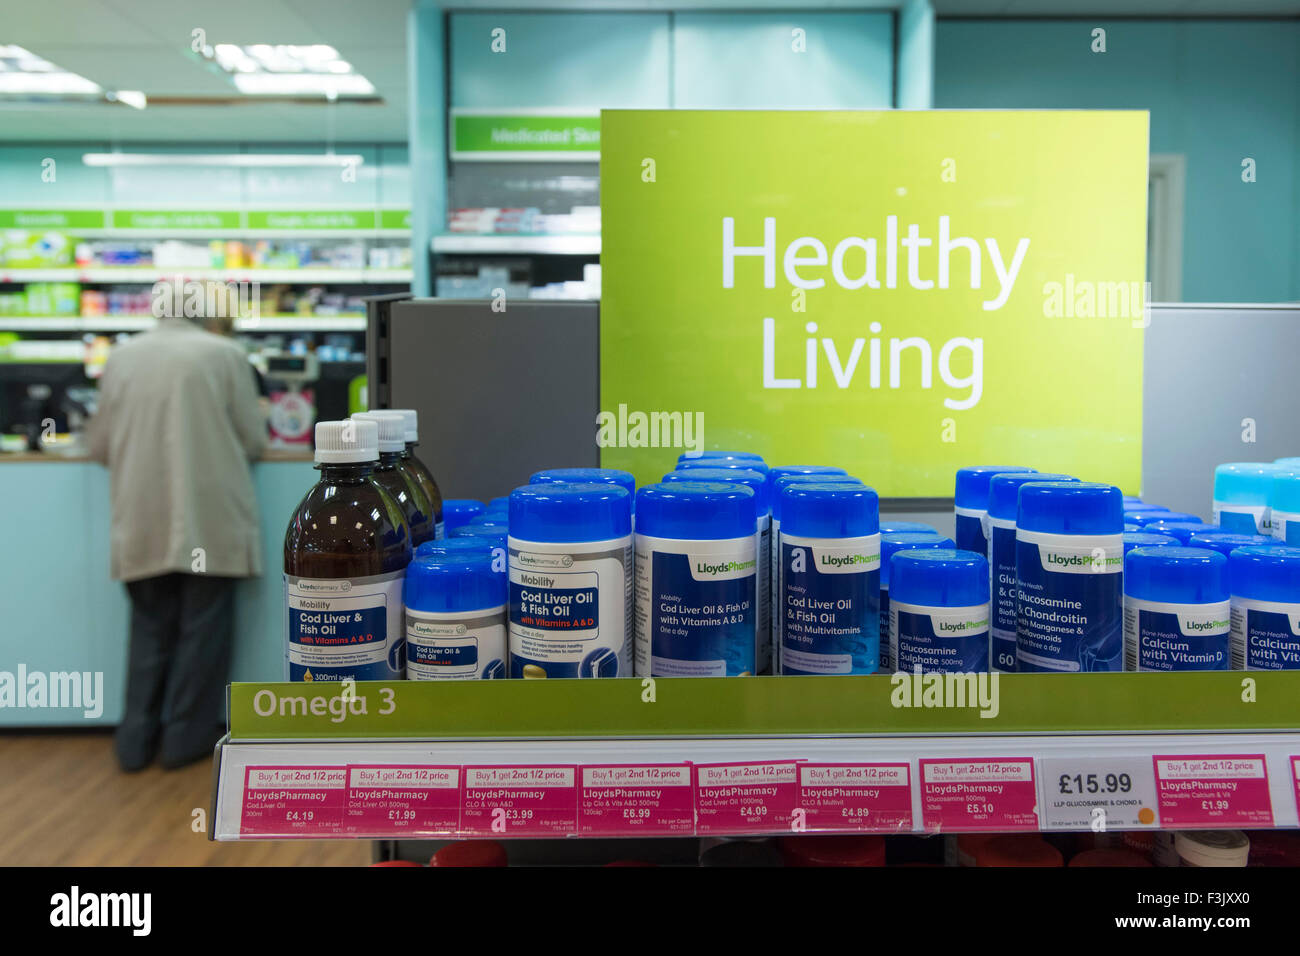 A shelf of healthy living supplements and vitamin tablets in a chemist / pharmacy. - Stock Image